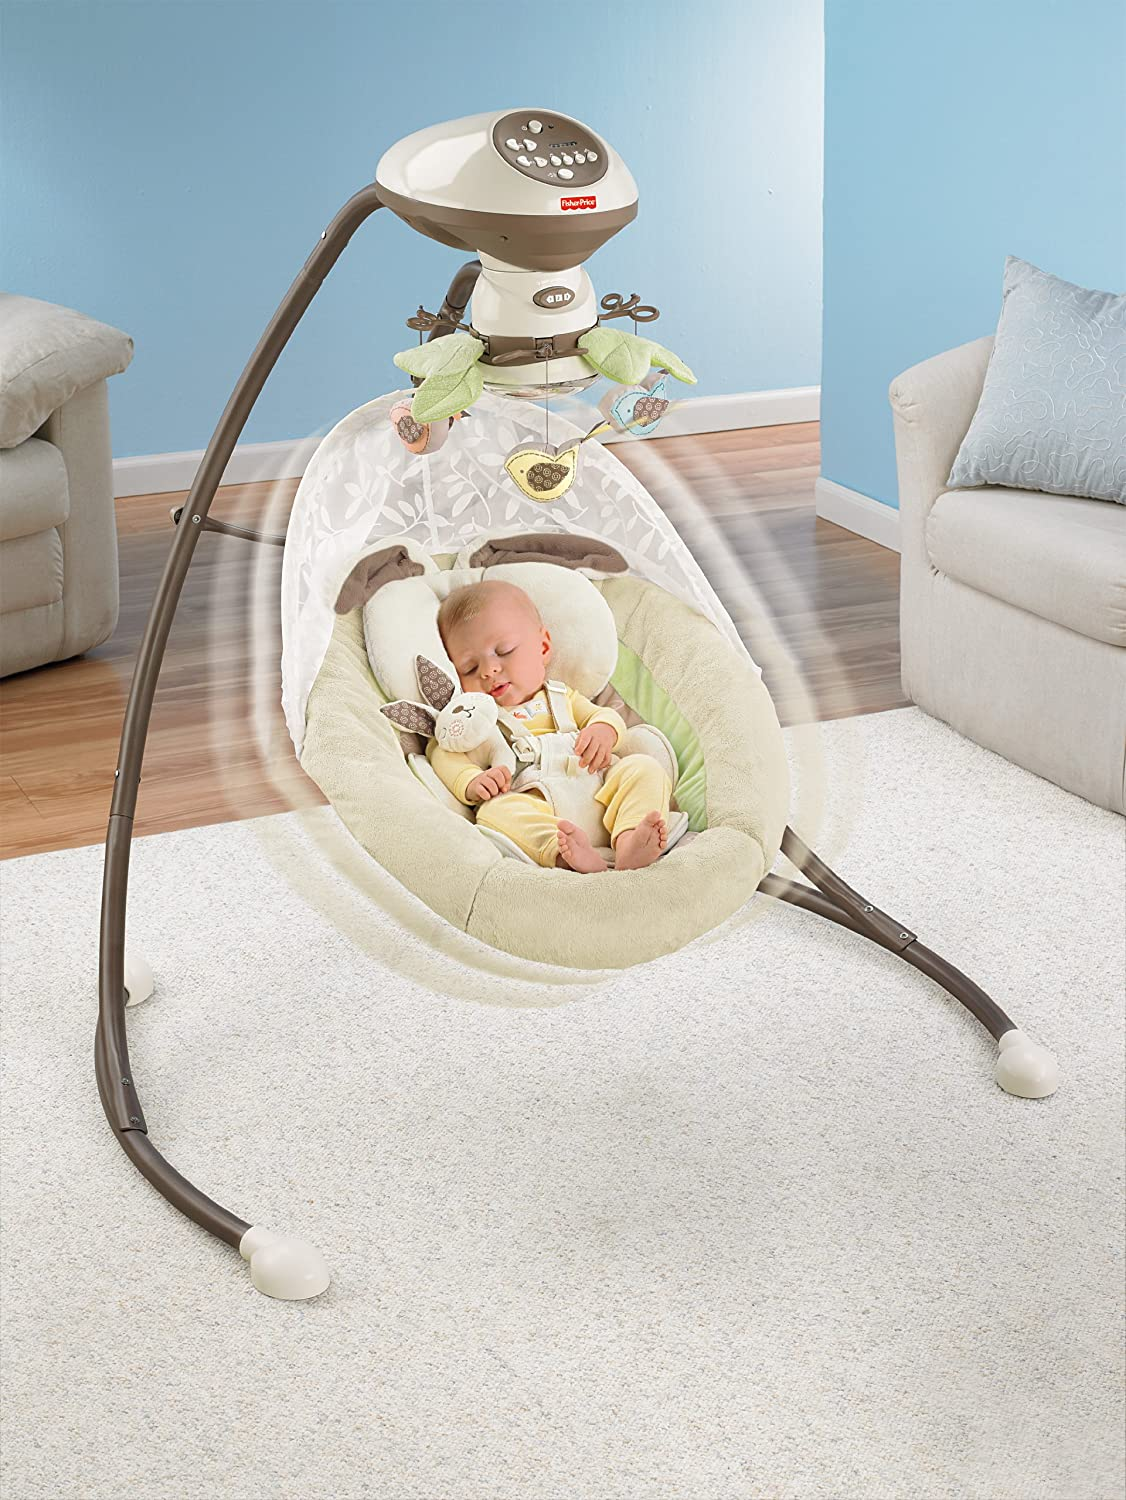 The top 10 best baby swings for 2014 feedback and reviews - Best baby swings for small spaces image ...